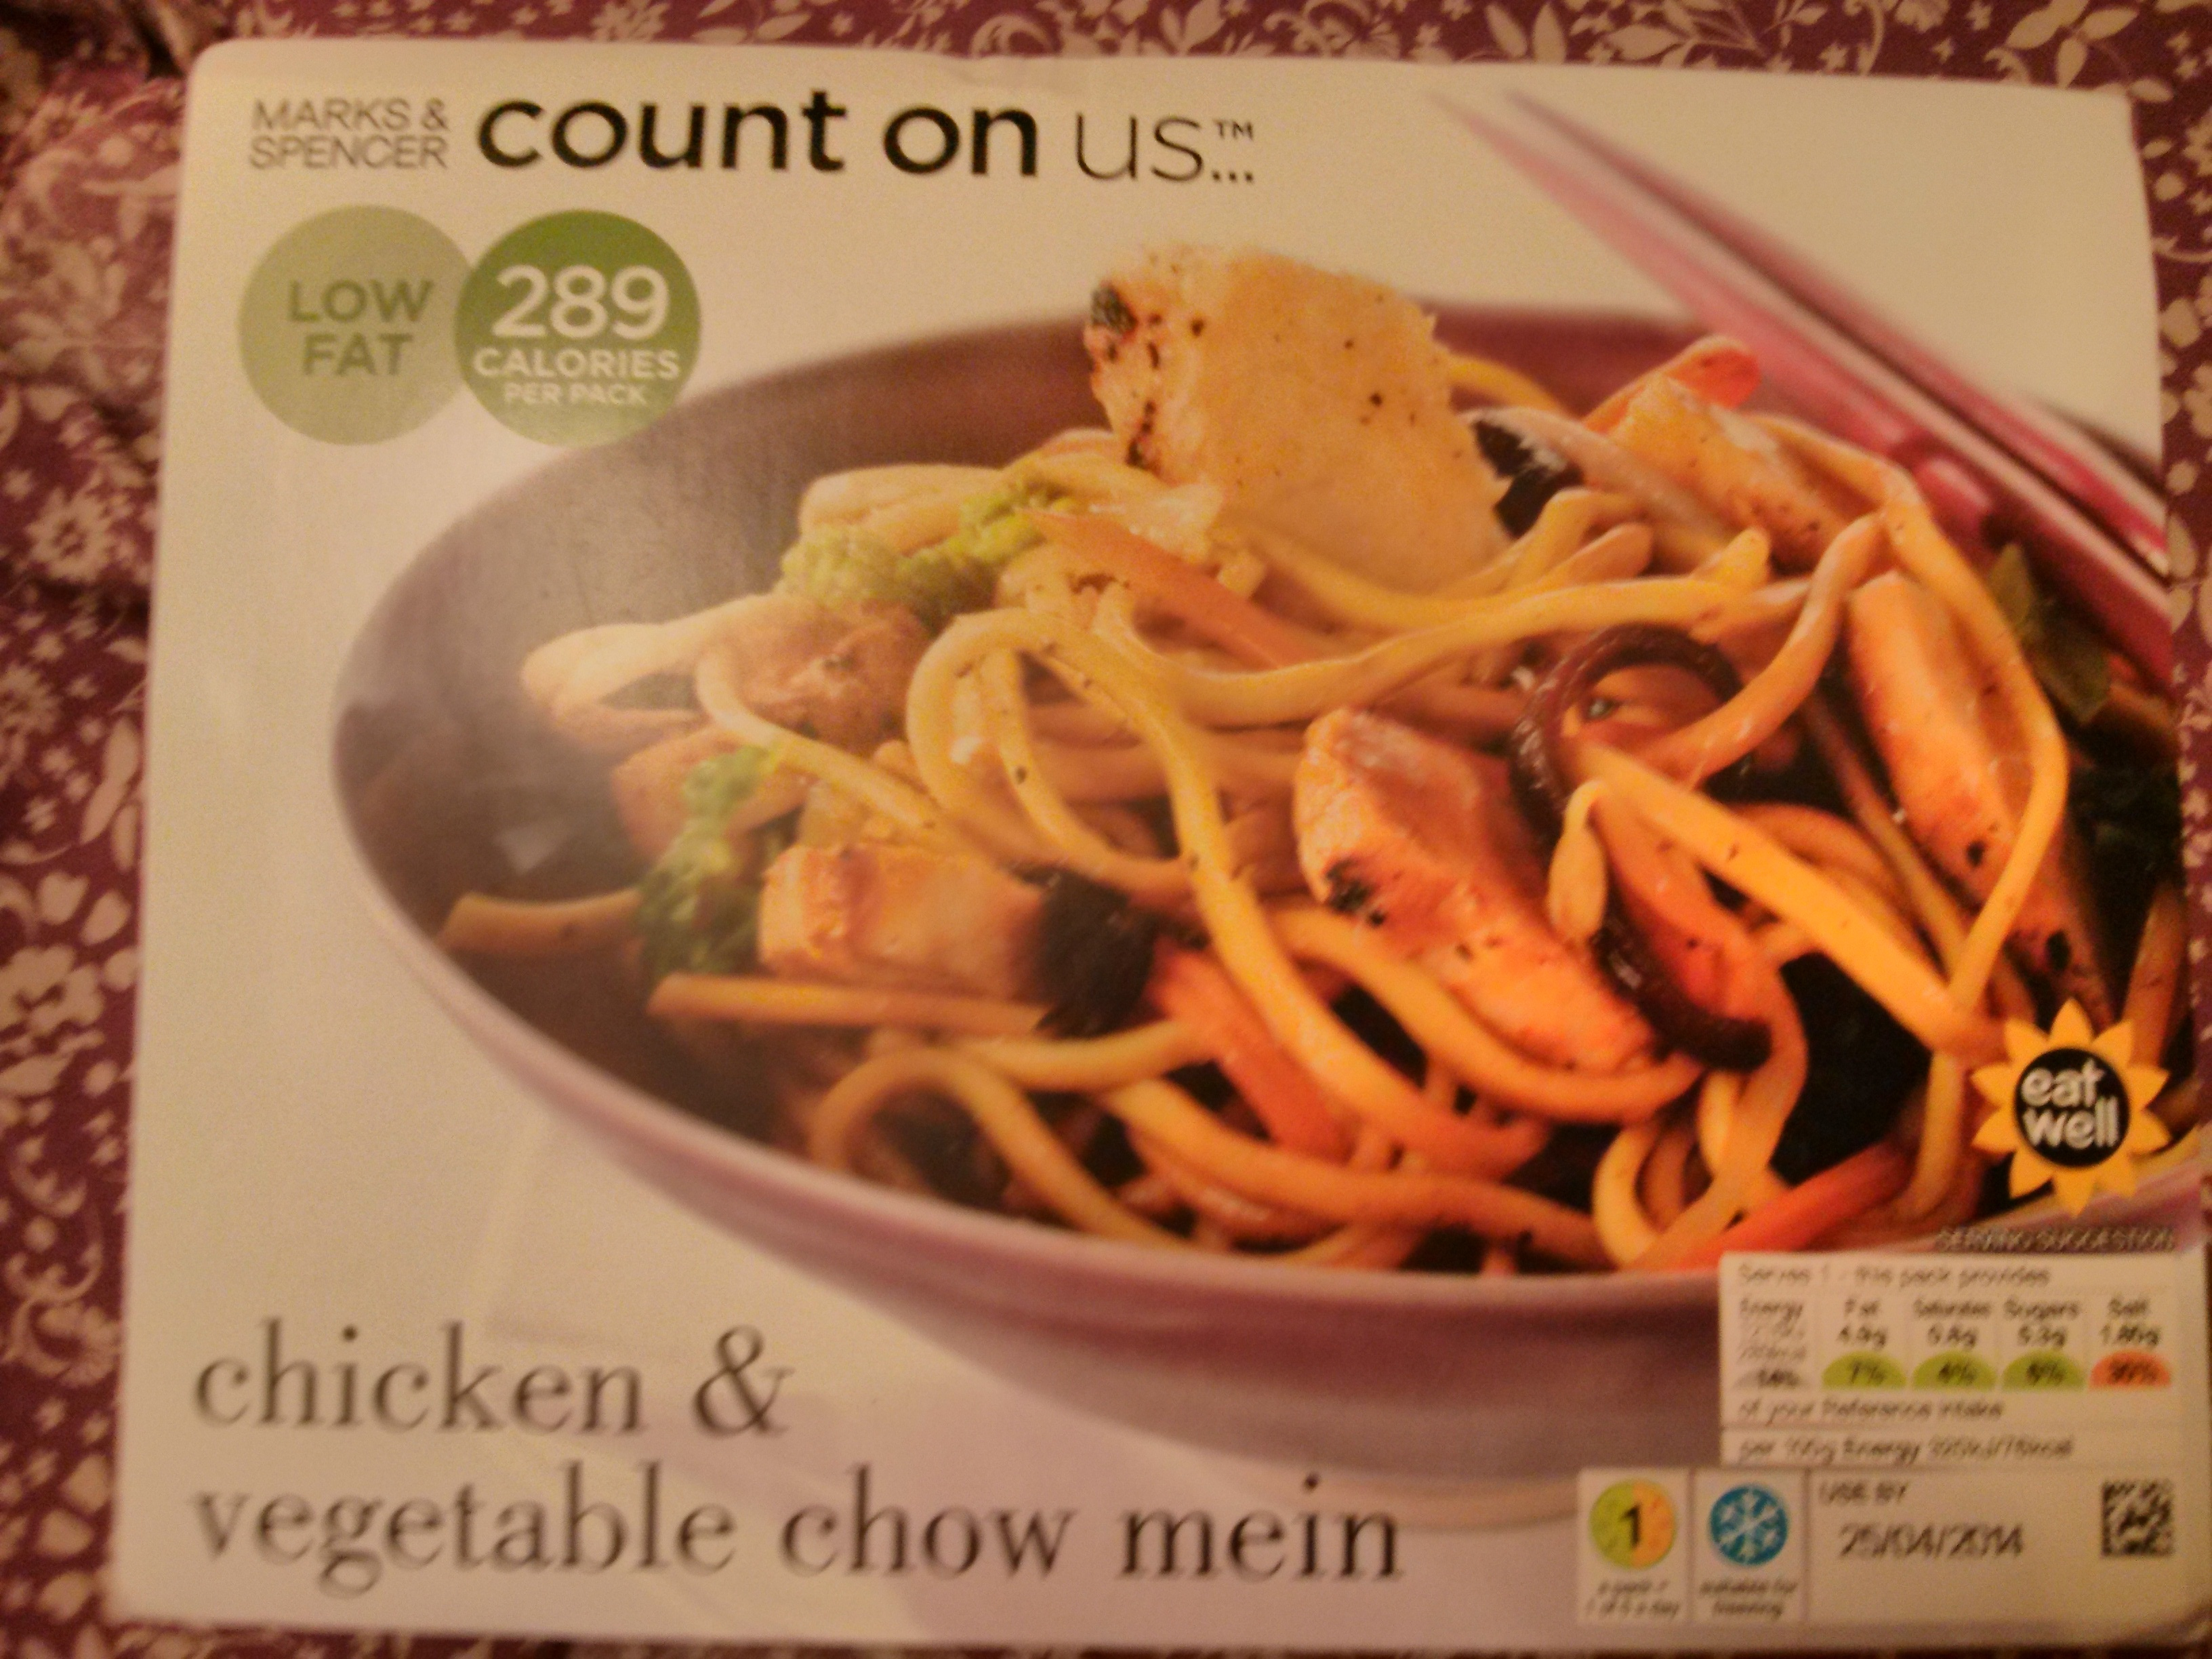 Chicken & vegetable chow mein - Product - fr